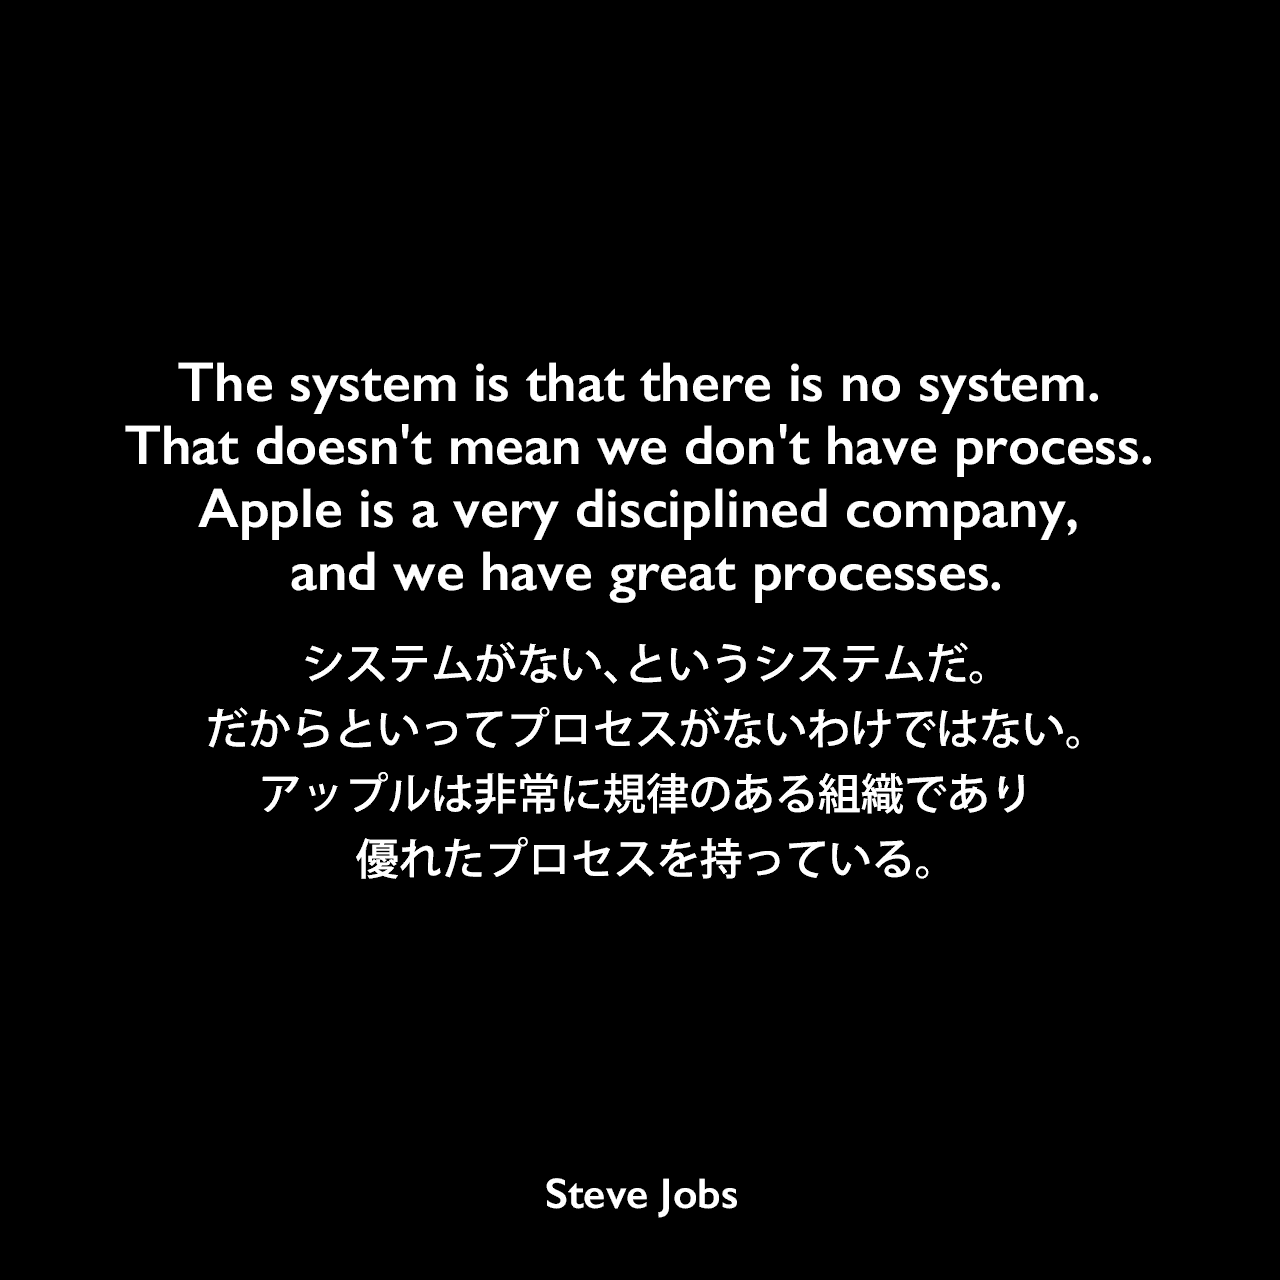 The system is that there is no system. That doesn't mean we don't have process. Apple is a very disciplined company, and we have great processes.システムがない、というシステムだ。だからといってプロセスがないわけではない。アップルは非常に規律のある組織であり優れたプロセスを持っている。- BusinessWeek 2004年10月12日号よりSteve Jobs